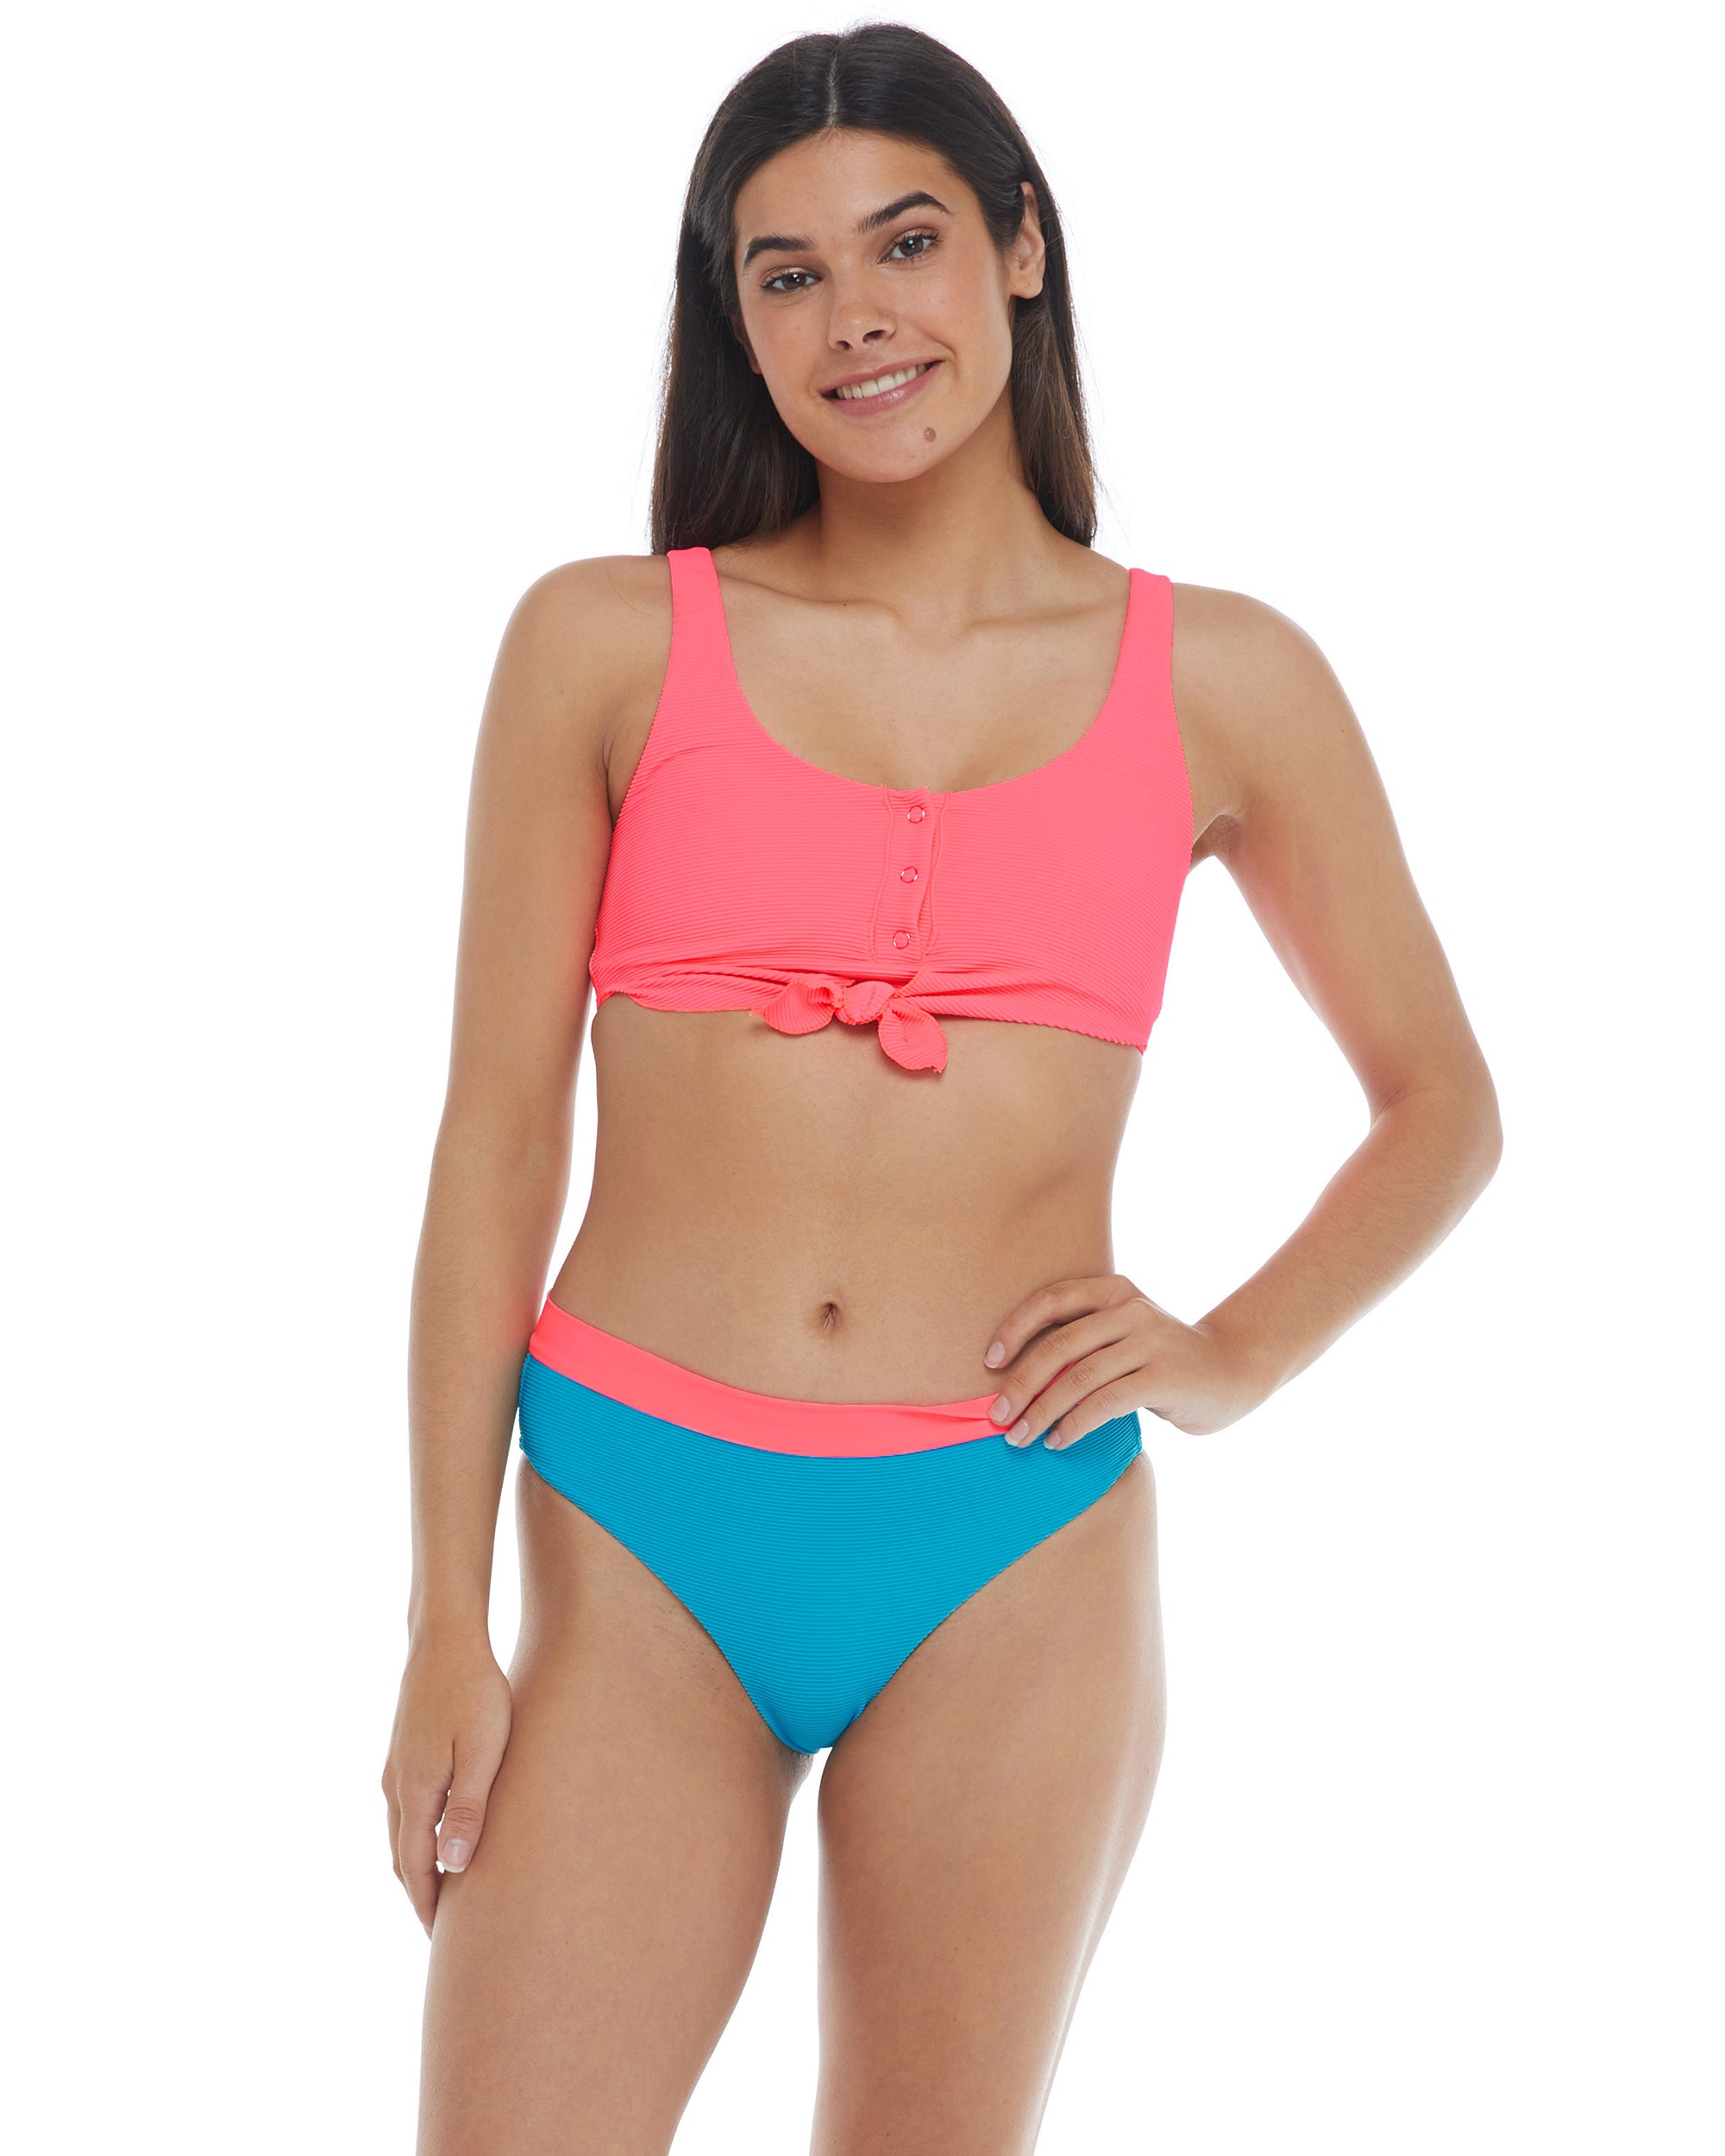 Spectrum Kate Crop Tank Bikini Top  - Neon Pink